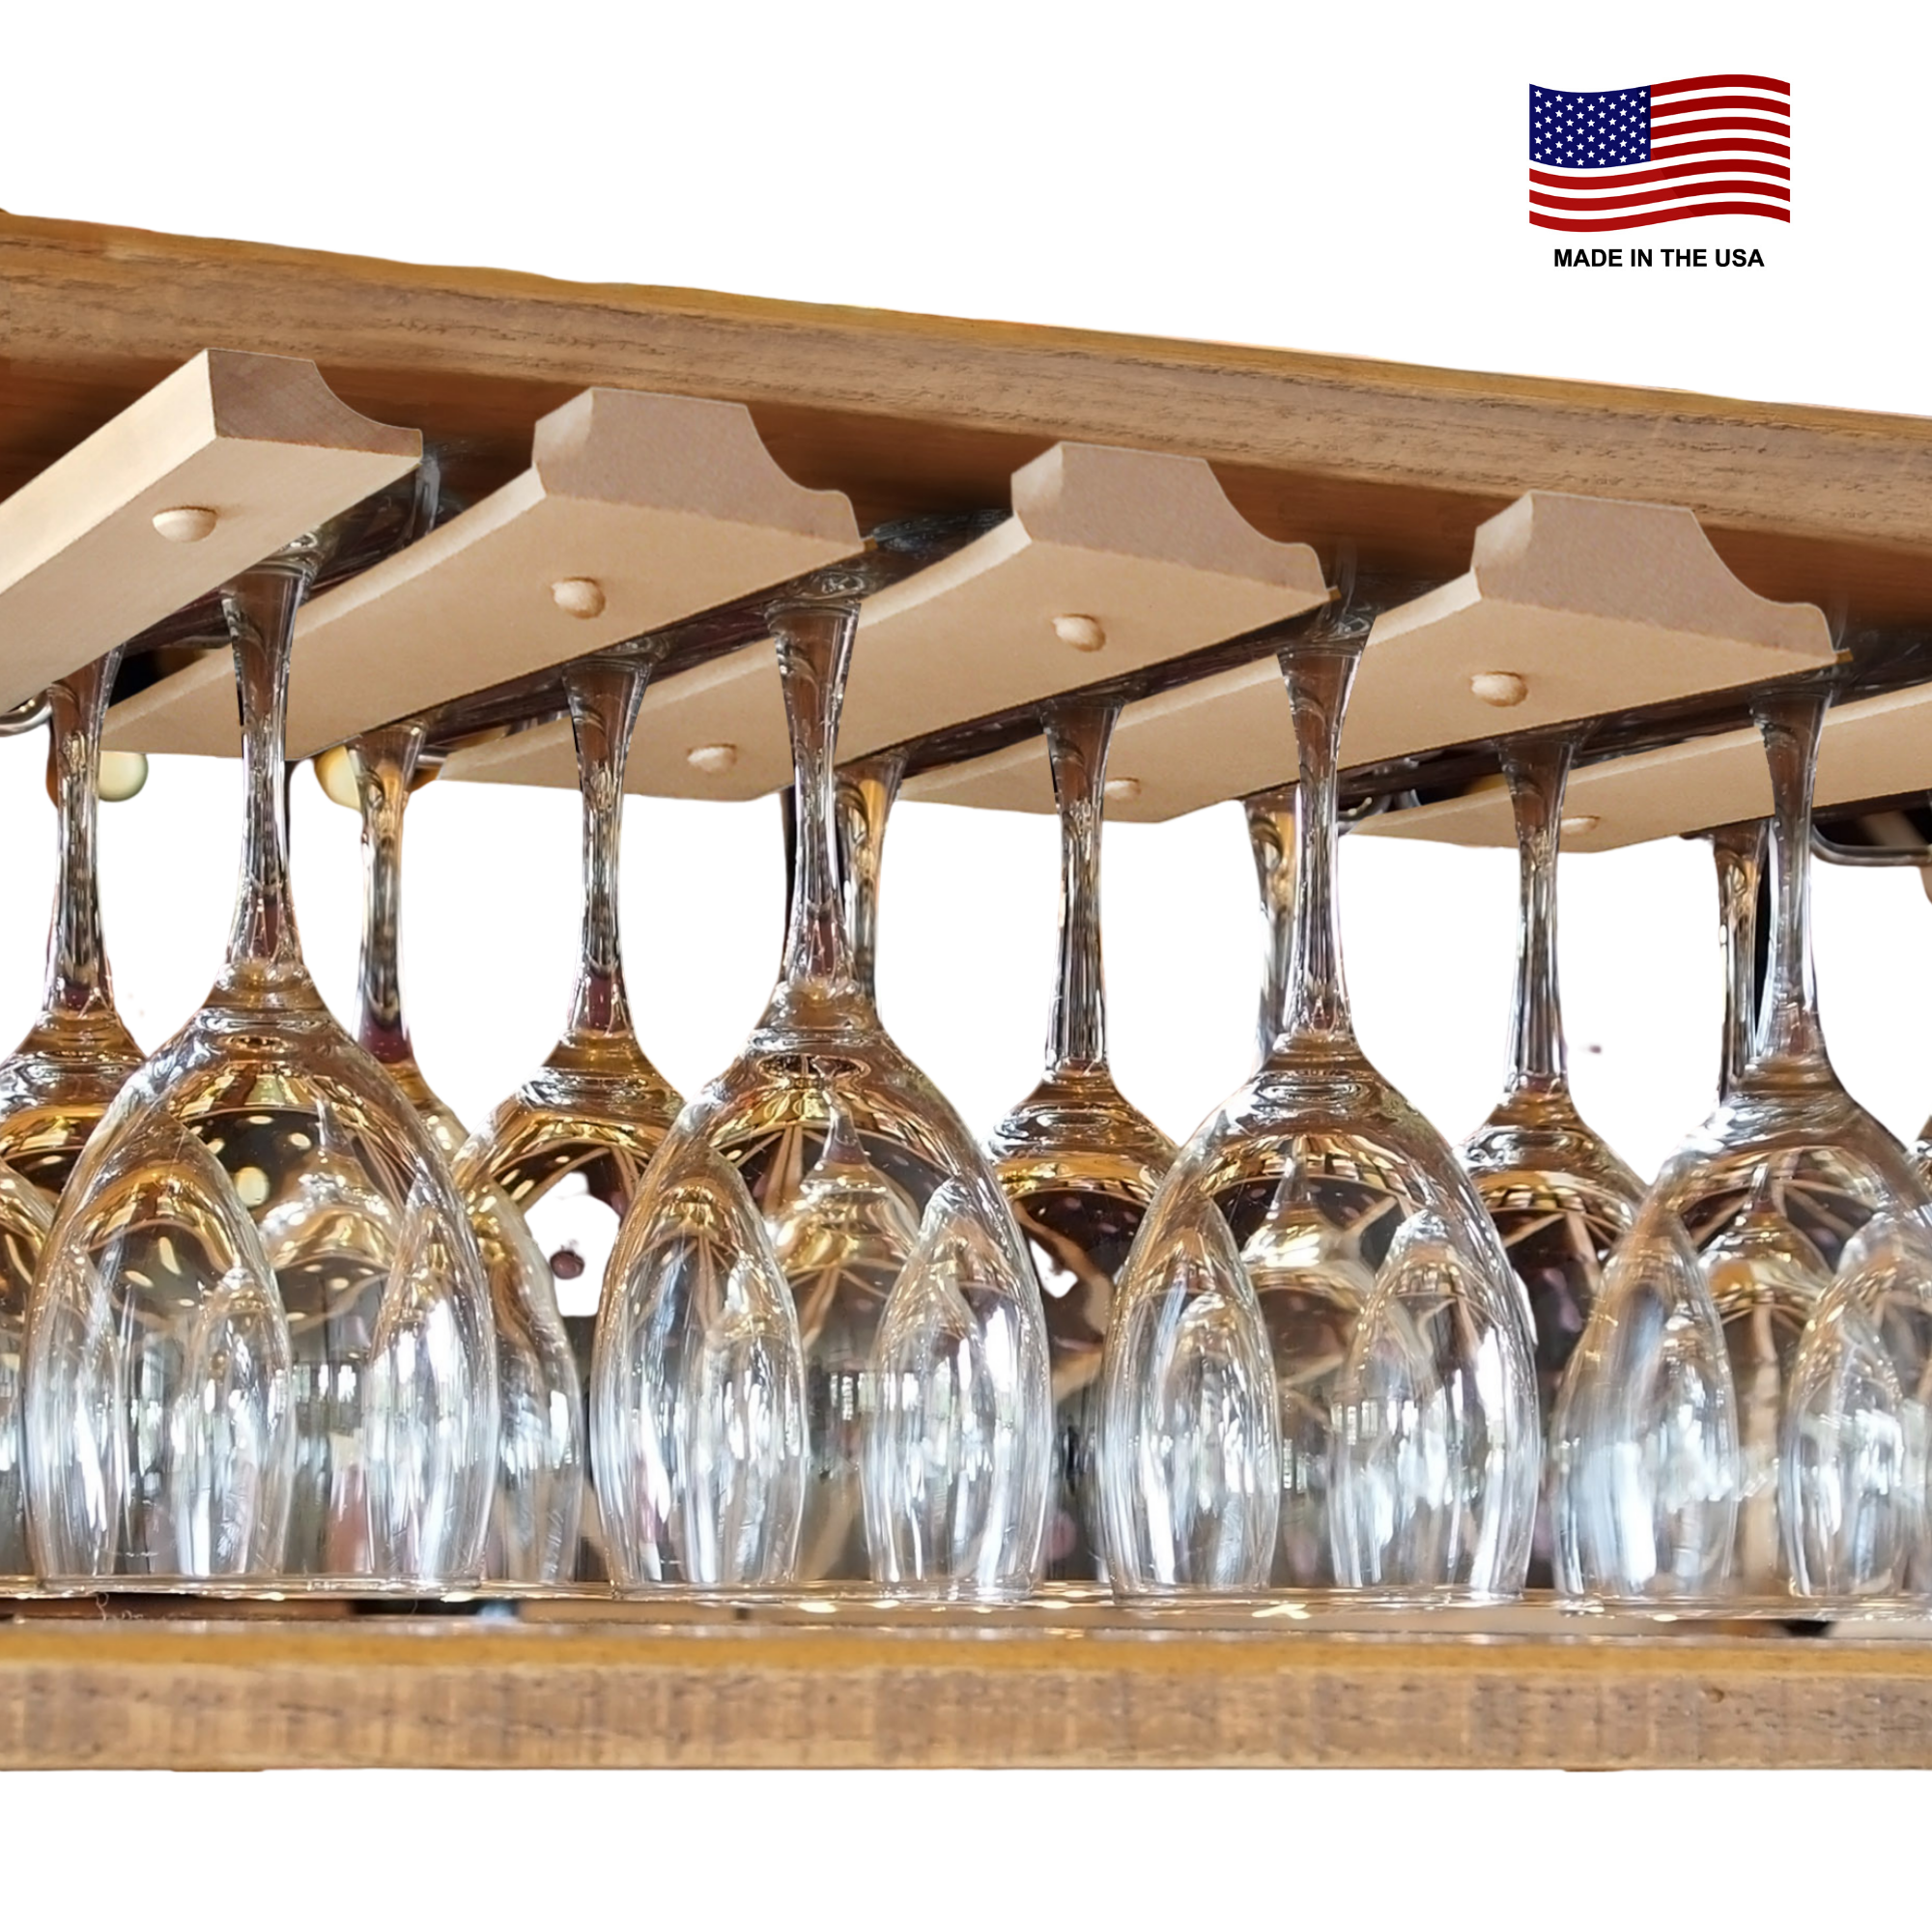 Wine Glass Rack Under Cabinet for Hanging Glasses - Double